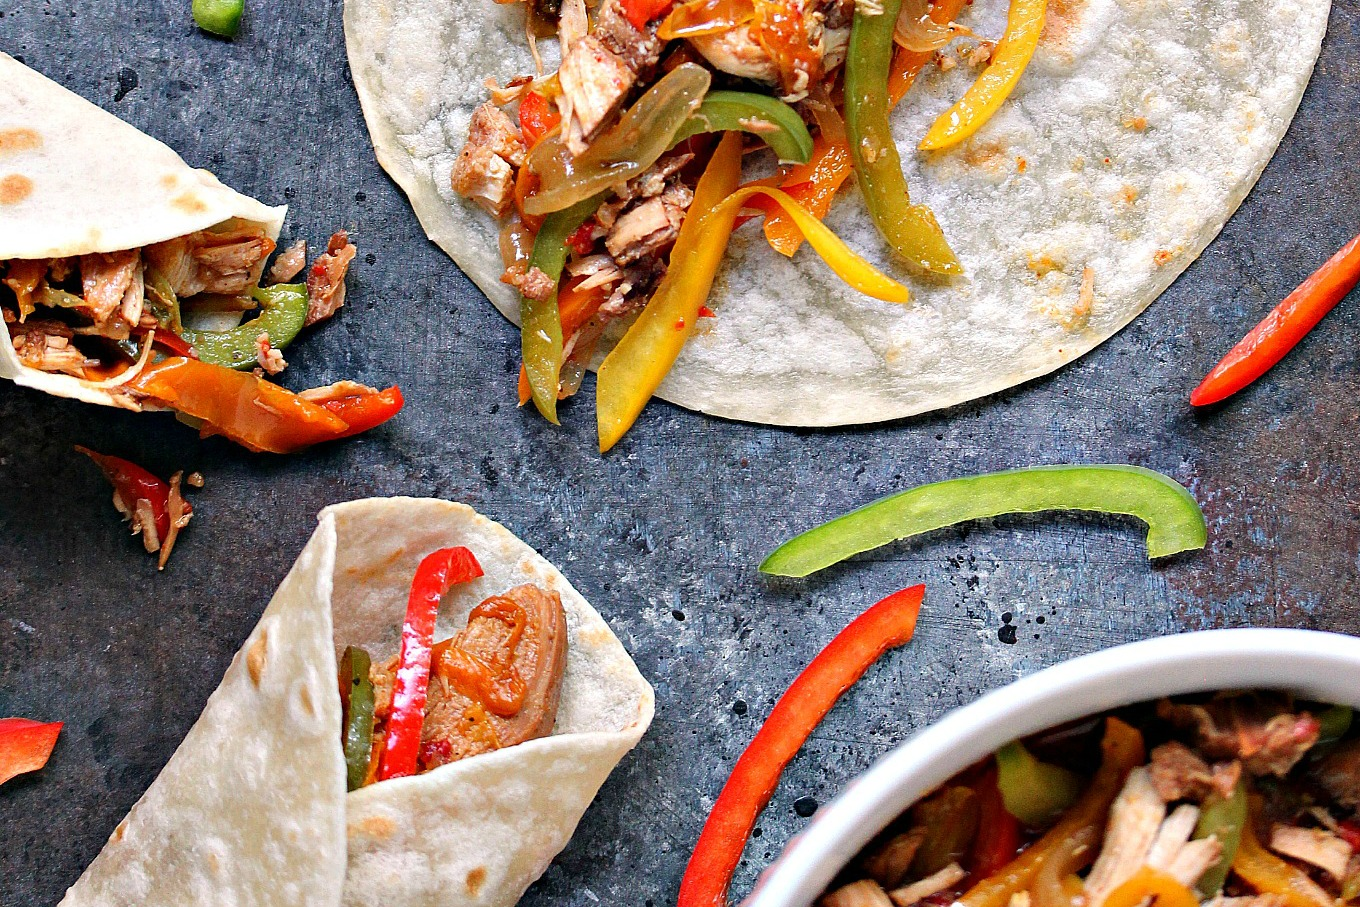 Slow Cooker Chicken Fajitas from cravingsofalunatic.com- This recipe is incredibly easy to make, but packed with intense flavour. Every bite is filled with bell peppers, onions and chicken, all wrapped up in a fabulous tortilla. (@CravingsLunatic)